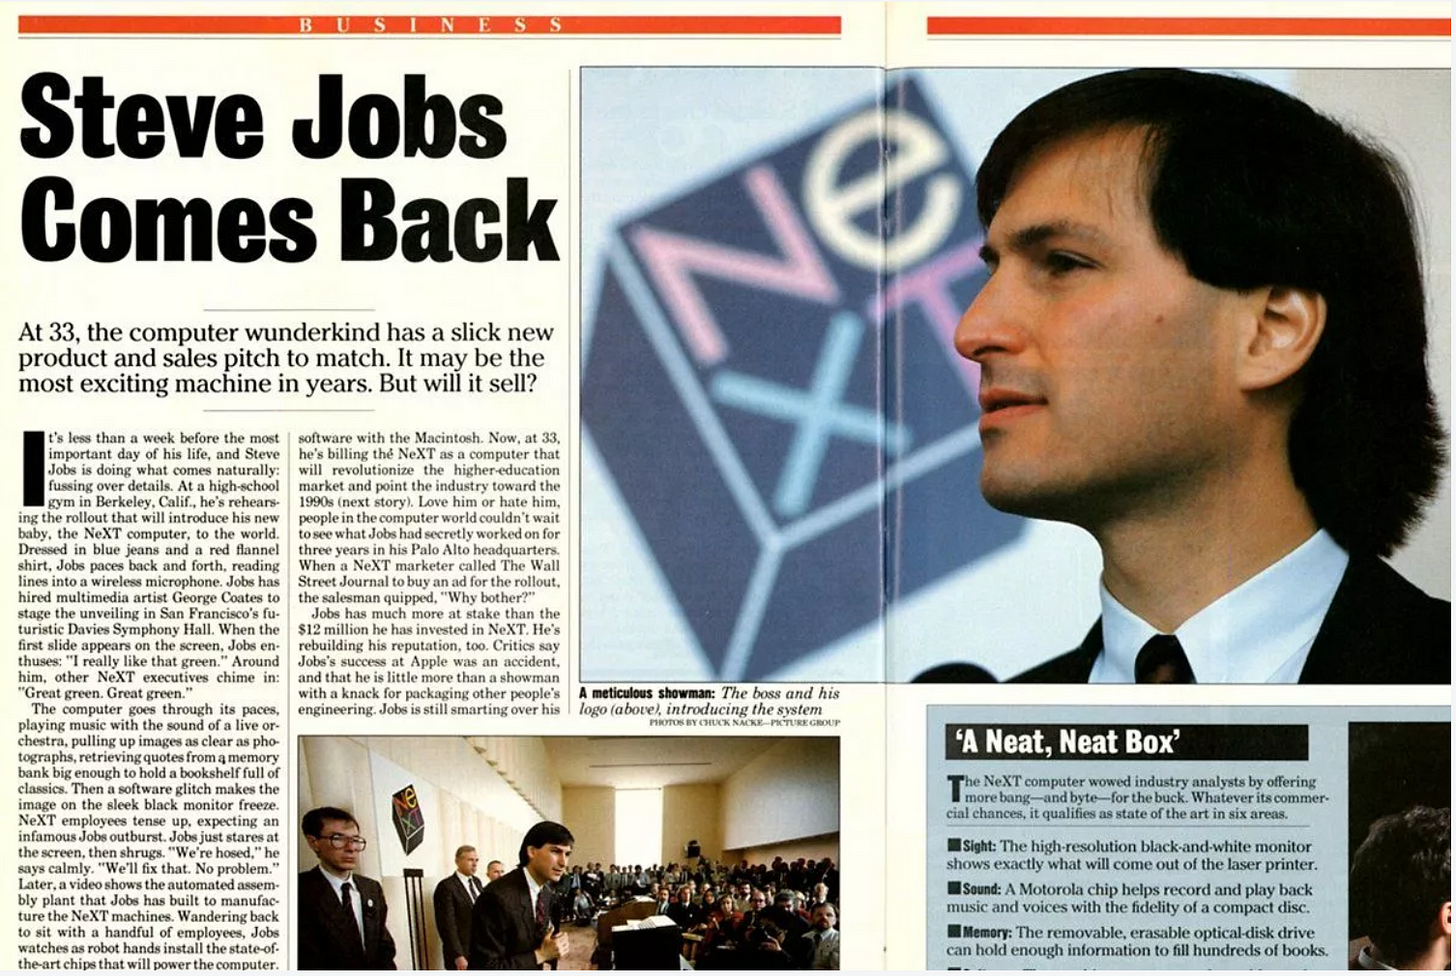 Newsweek magazine https://www.newsweek.com/steve-jobs-comes-back-207006